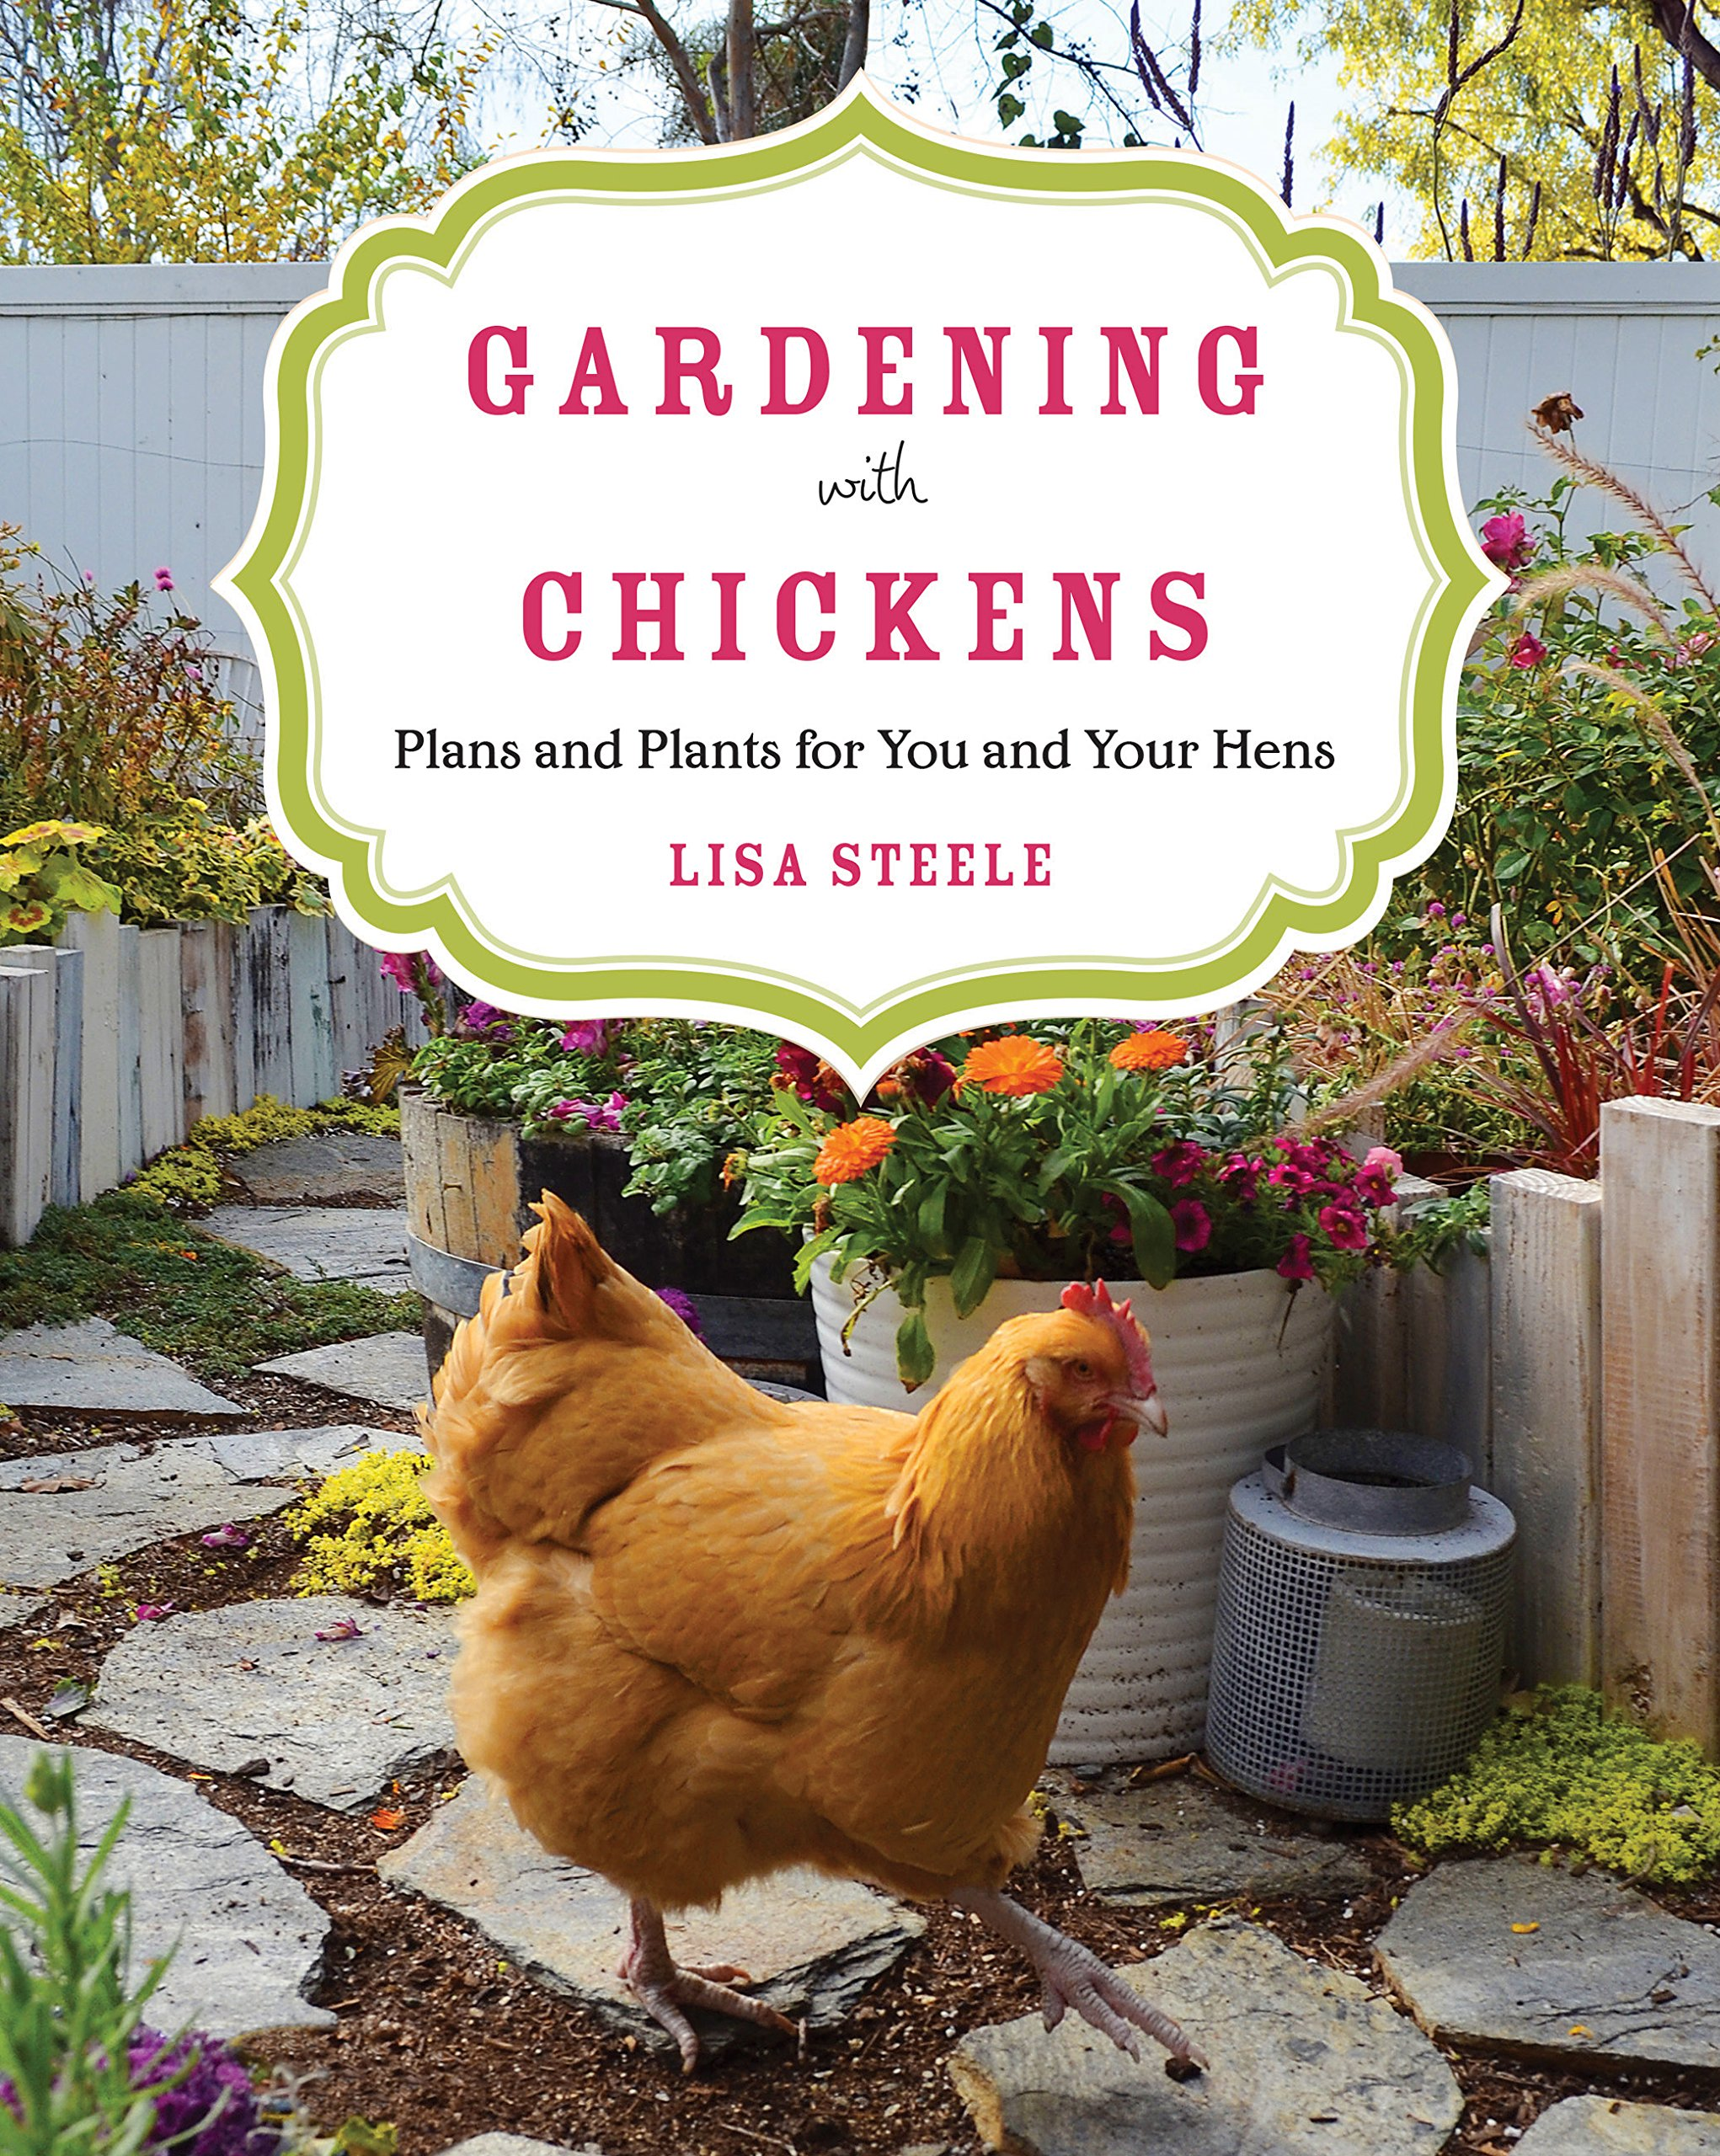 Gardening With Chickens: Plans And Plants For You And Your Hens:  Amazon: Lisa Steele: 9780760350478: Books